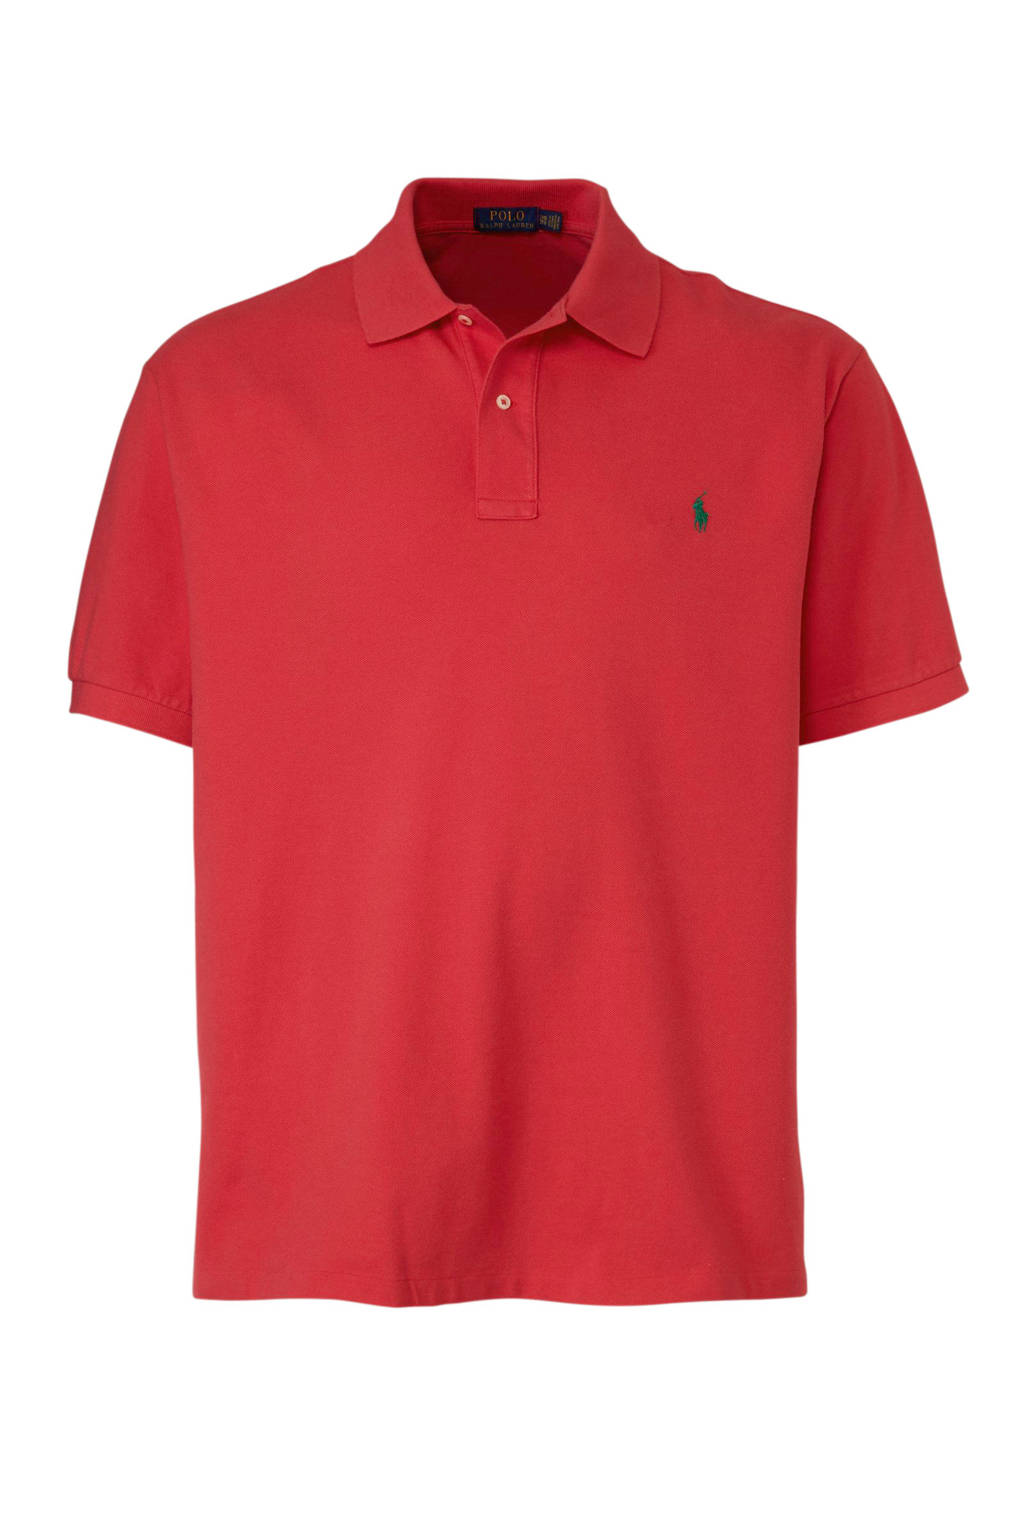 POLO Ralph Lauren Big & Tall +size polo, Rood